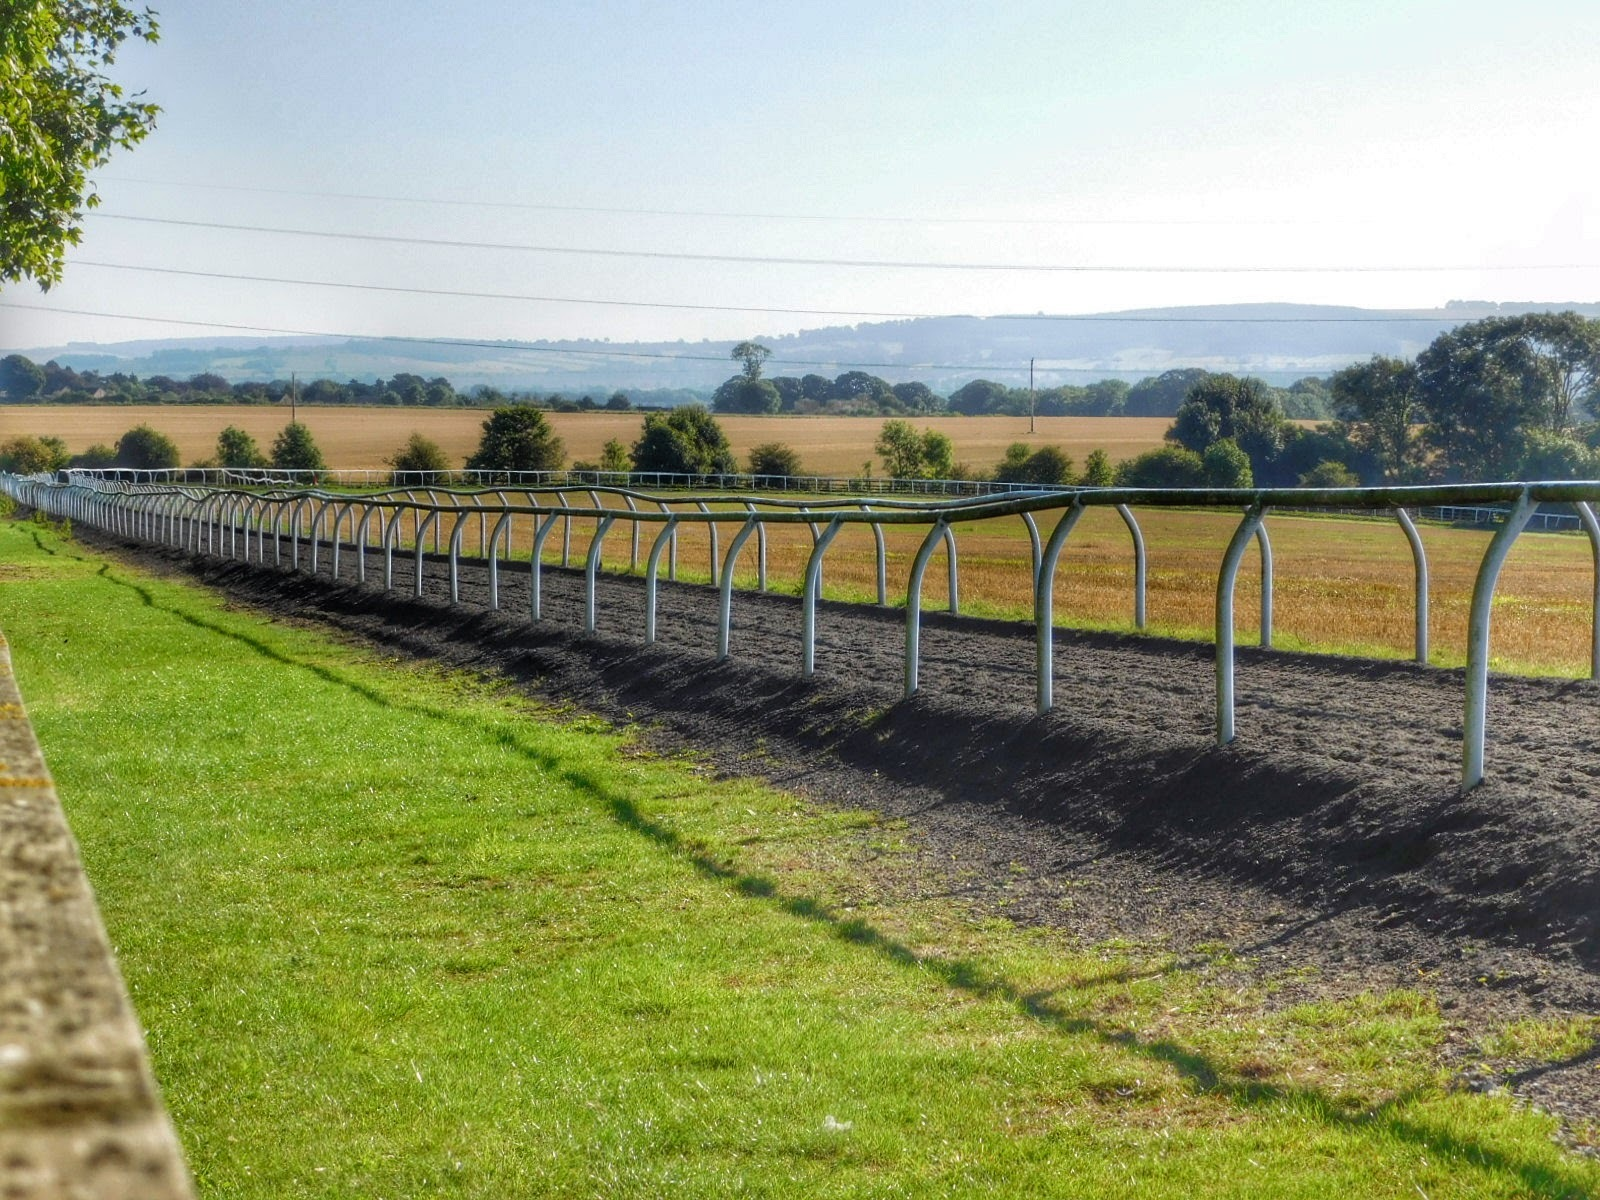 Near Malton, UK - Gallops Horse training facilities  by Sheila Button